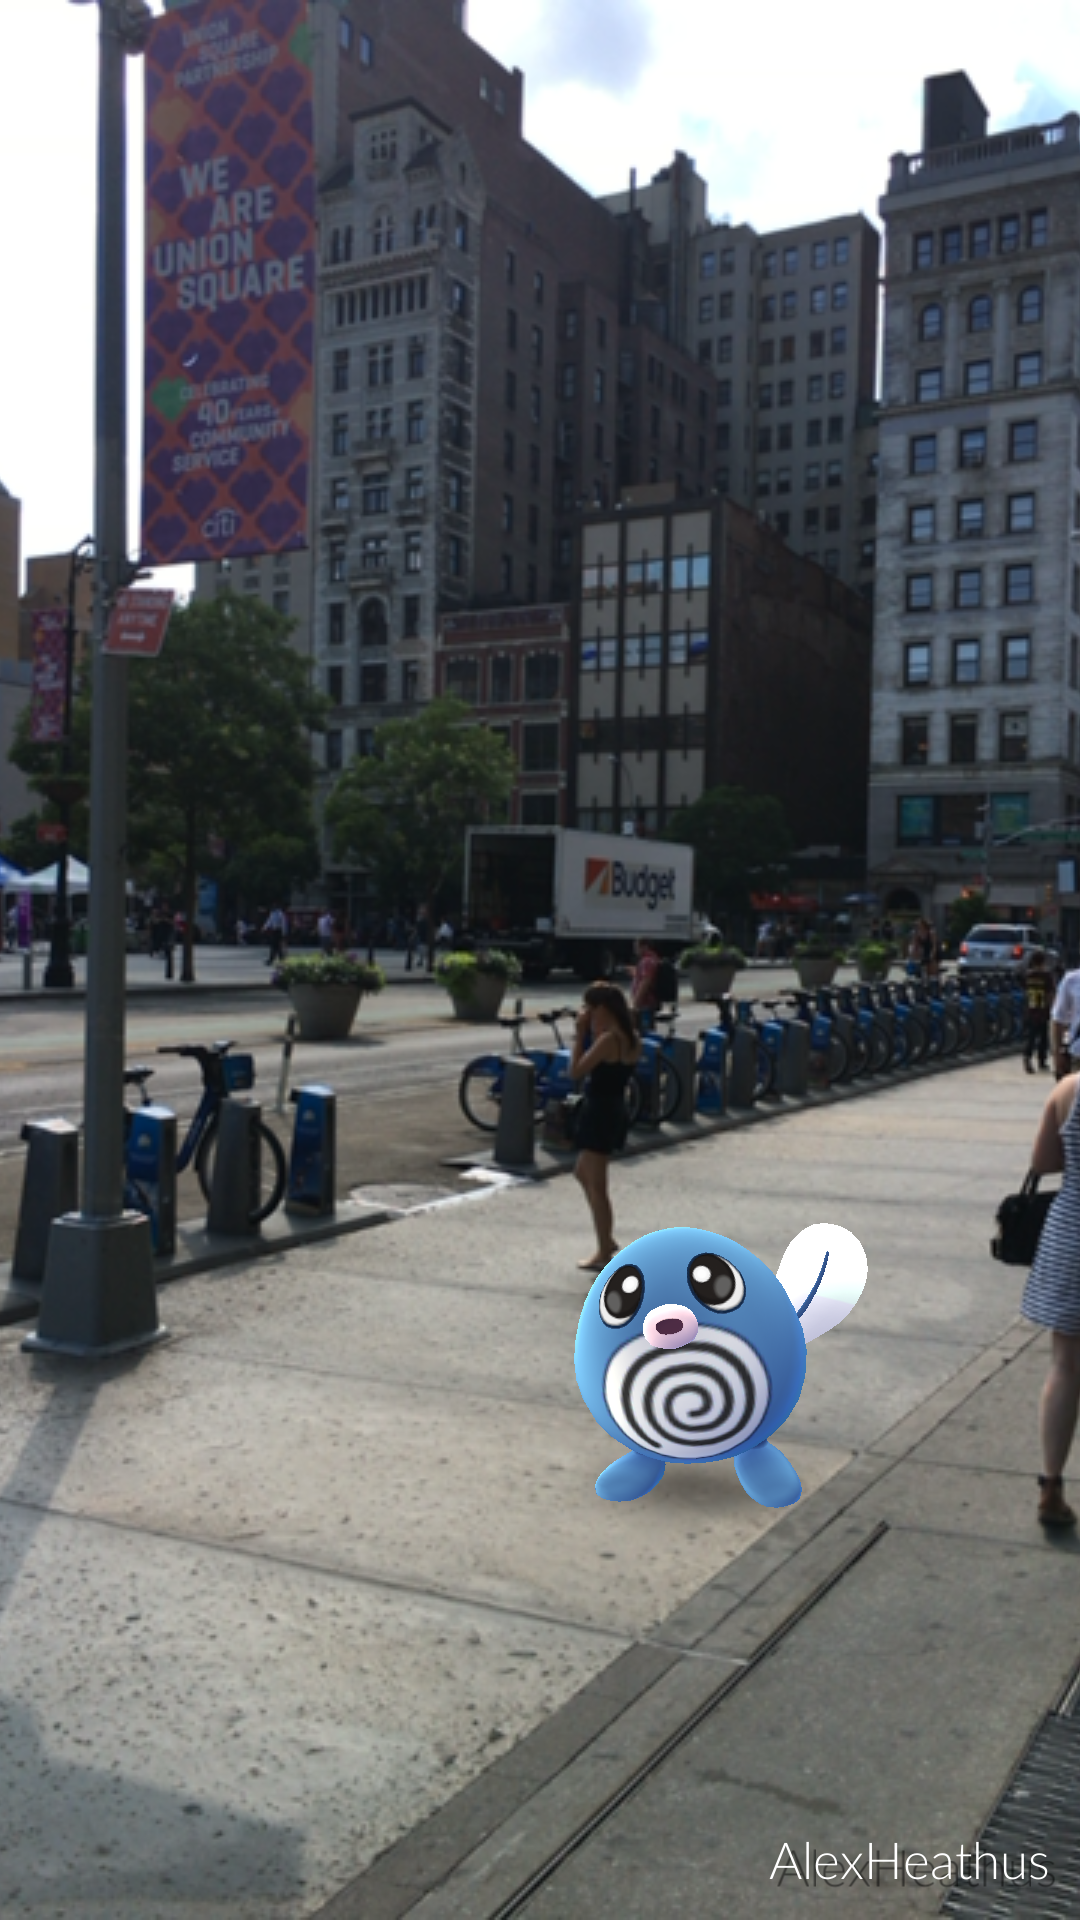 the-poliwag-was-exactly-where-the-map-said-it-would-be